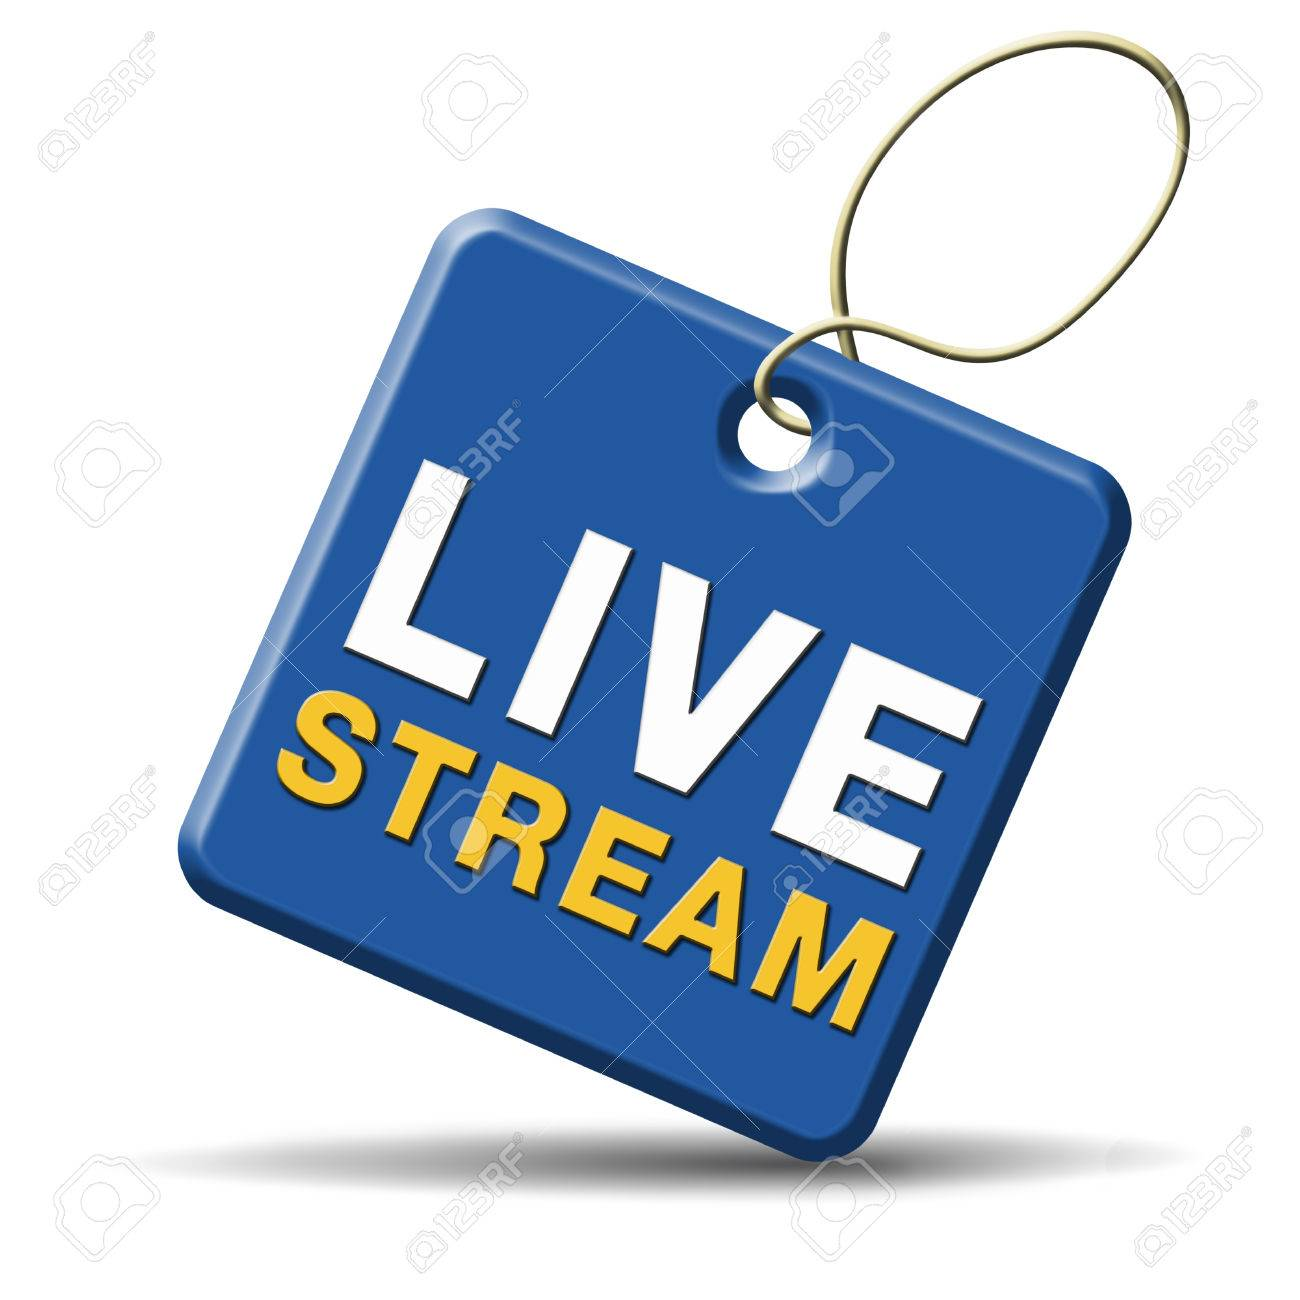 live stream tv music or video button icon or sign live on air broadcasting movie or radio program Stock Photo - 23187058